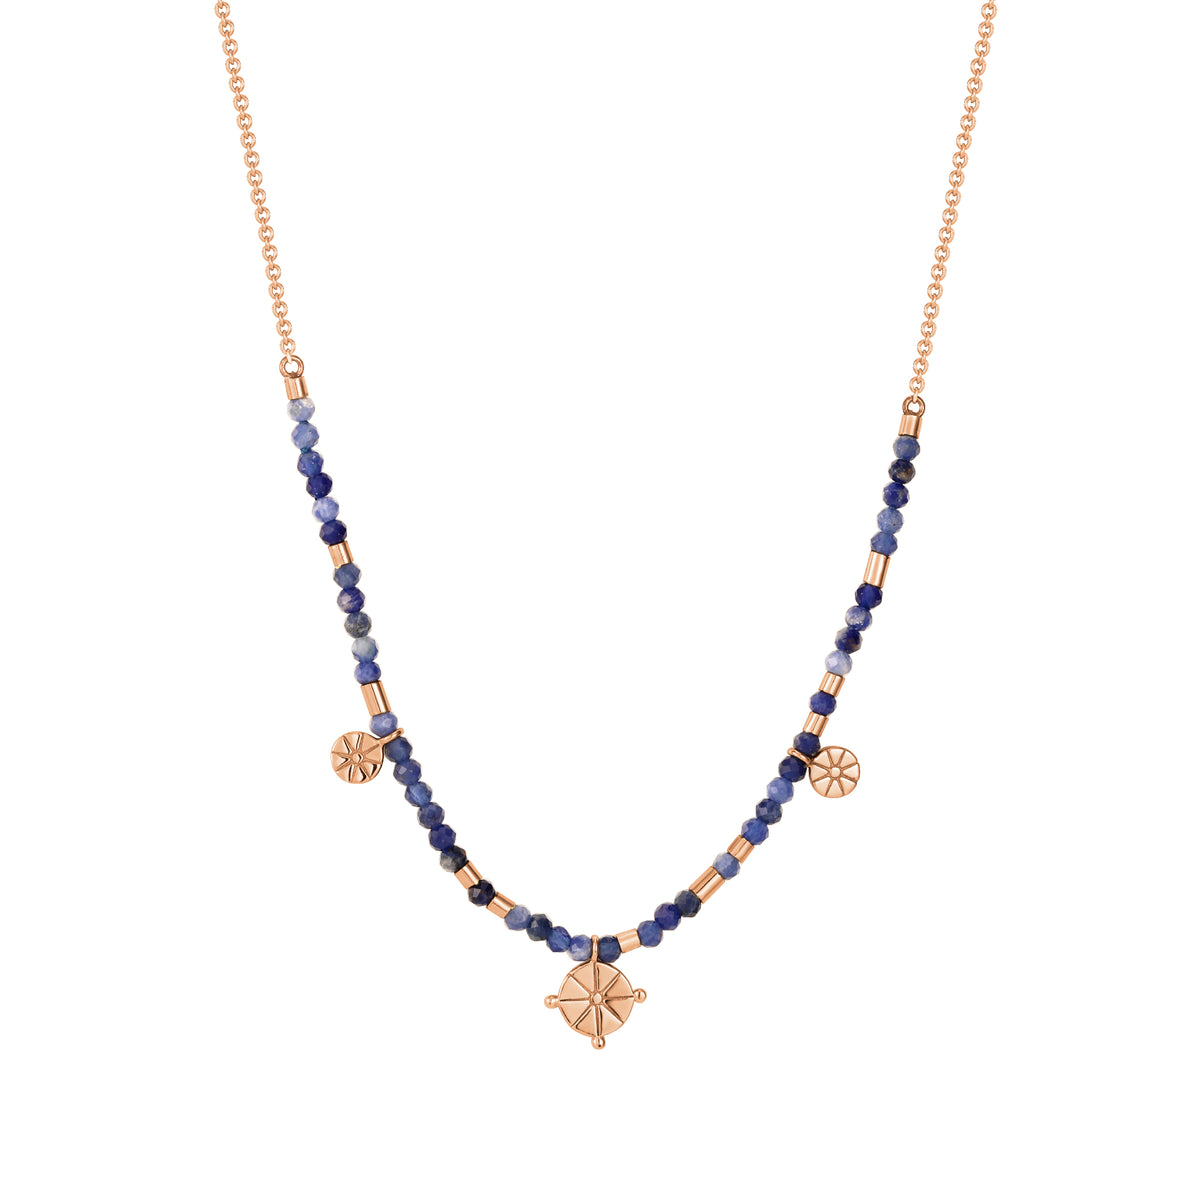 Spirito Rosa X Queen Dina Summer| River Necklace | 925 Silver | Blue-Vein Stone | Rose Gold Plated